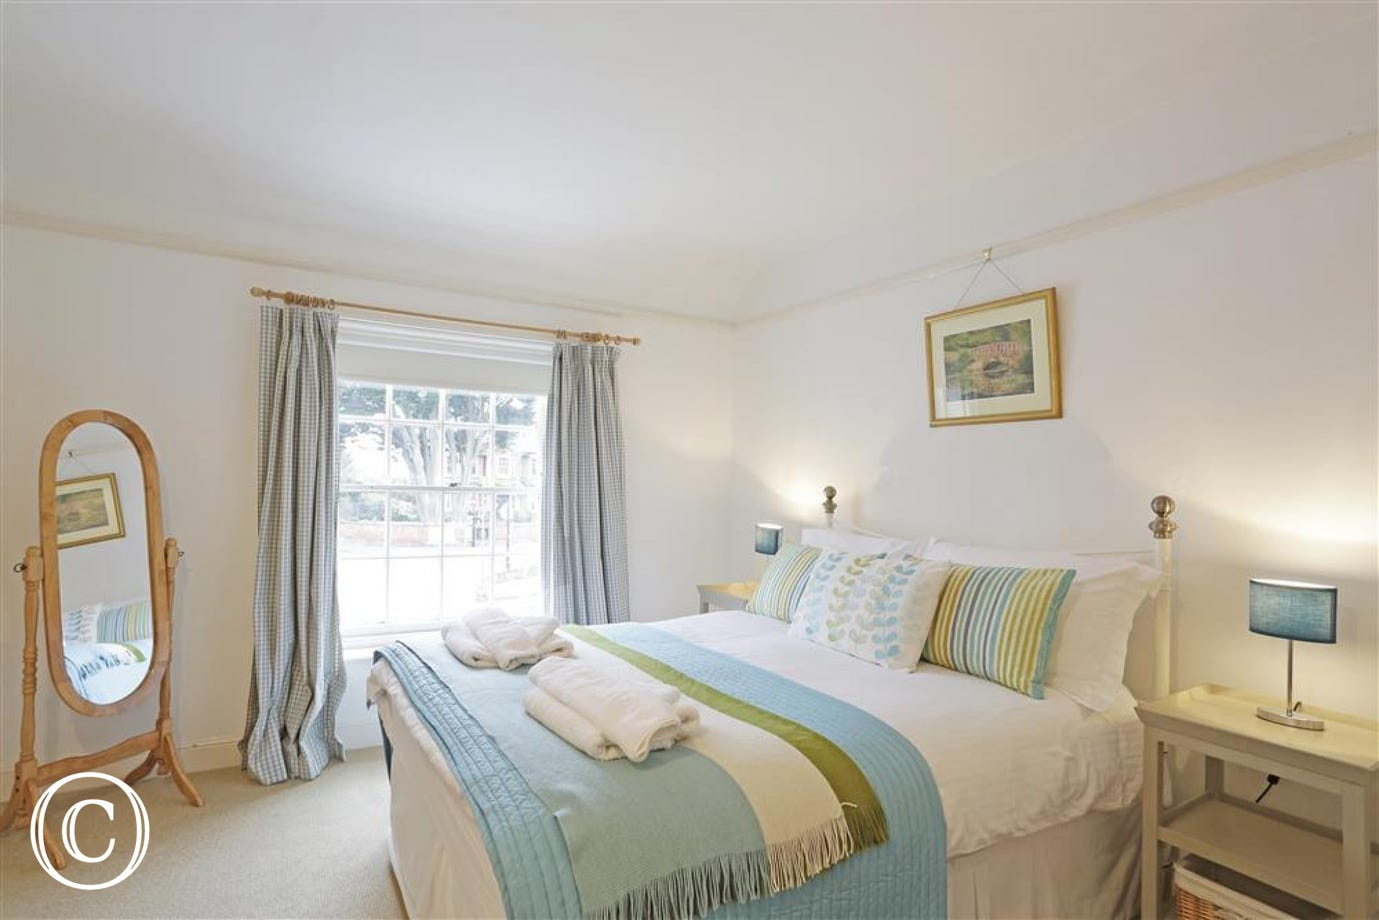 This main bedroom sleeps two people in this plush double bed with blue throw.